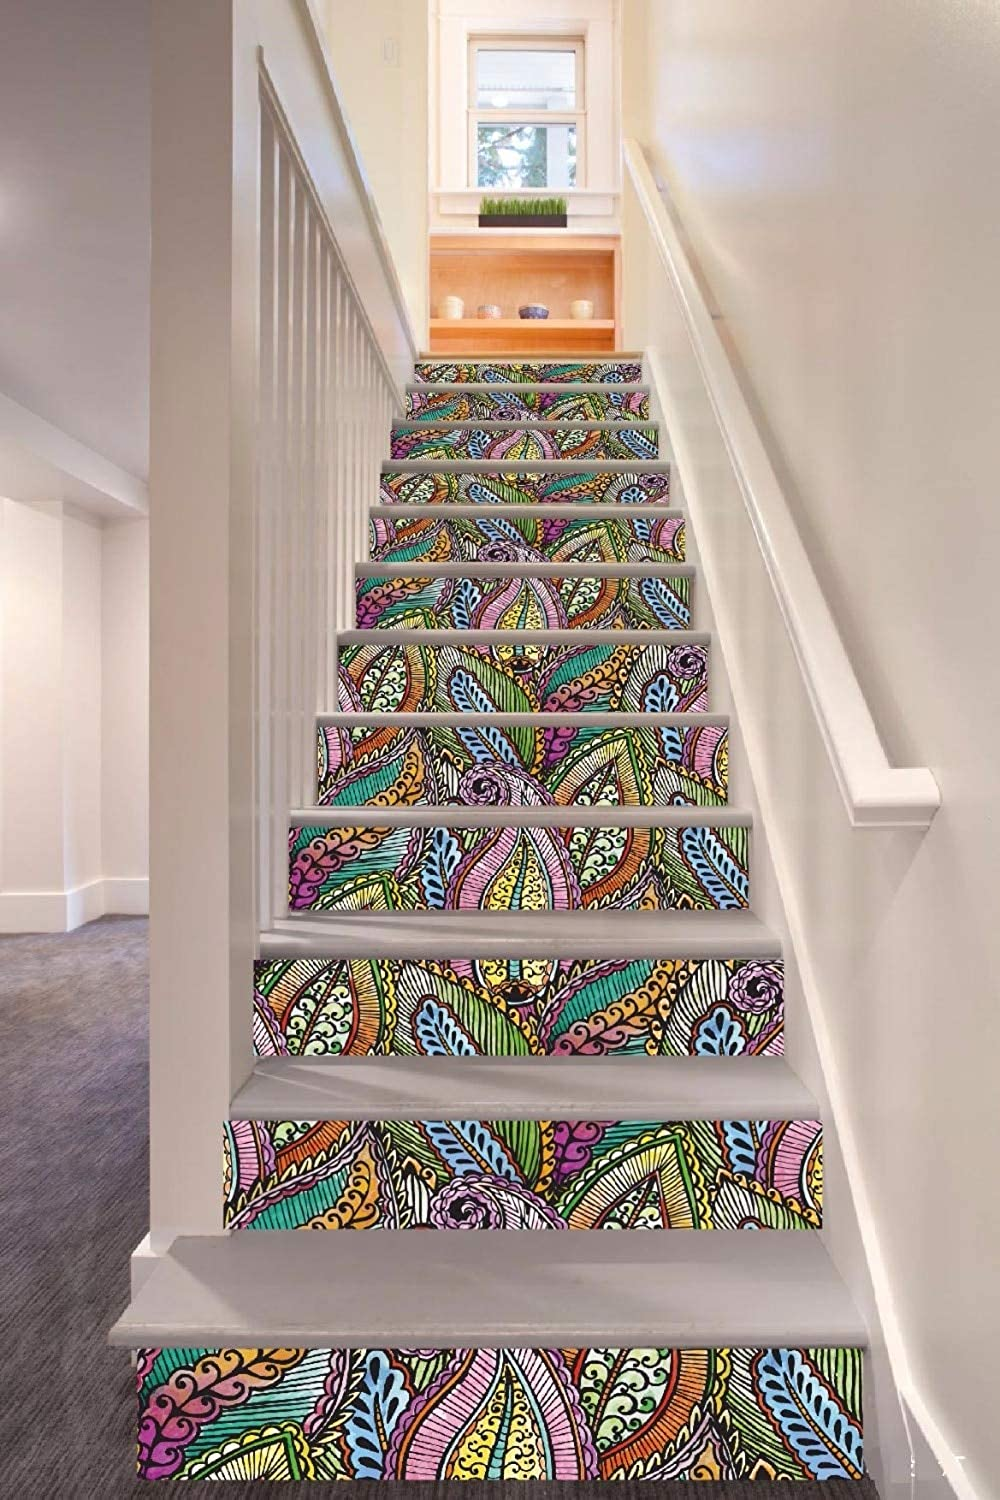 respuestas rápidas 3D DIY autoadhesivo autoadhesivo autoadhesivo 6pcs set 18cm X 100cm Colorful Abstract Fantasy Leaves Style Stair Sticker Wall Decor  marca de lujo